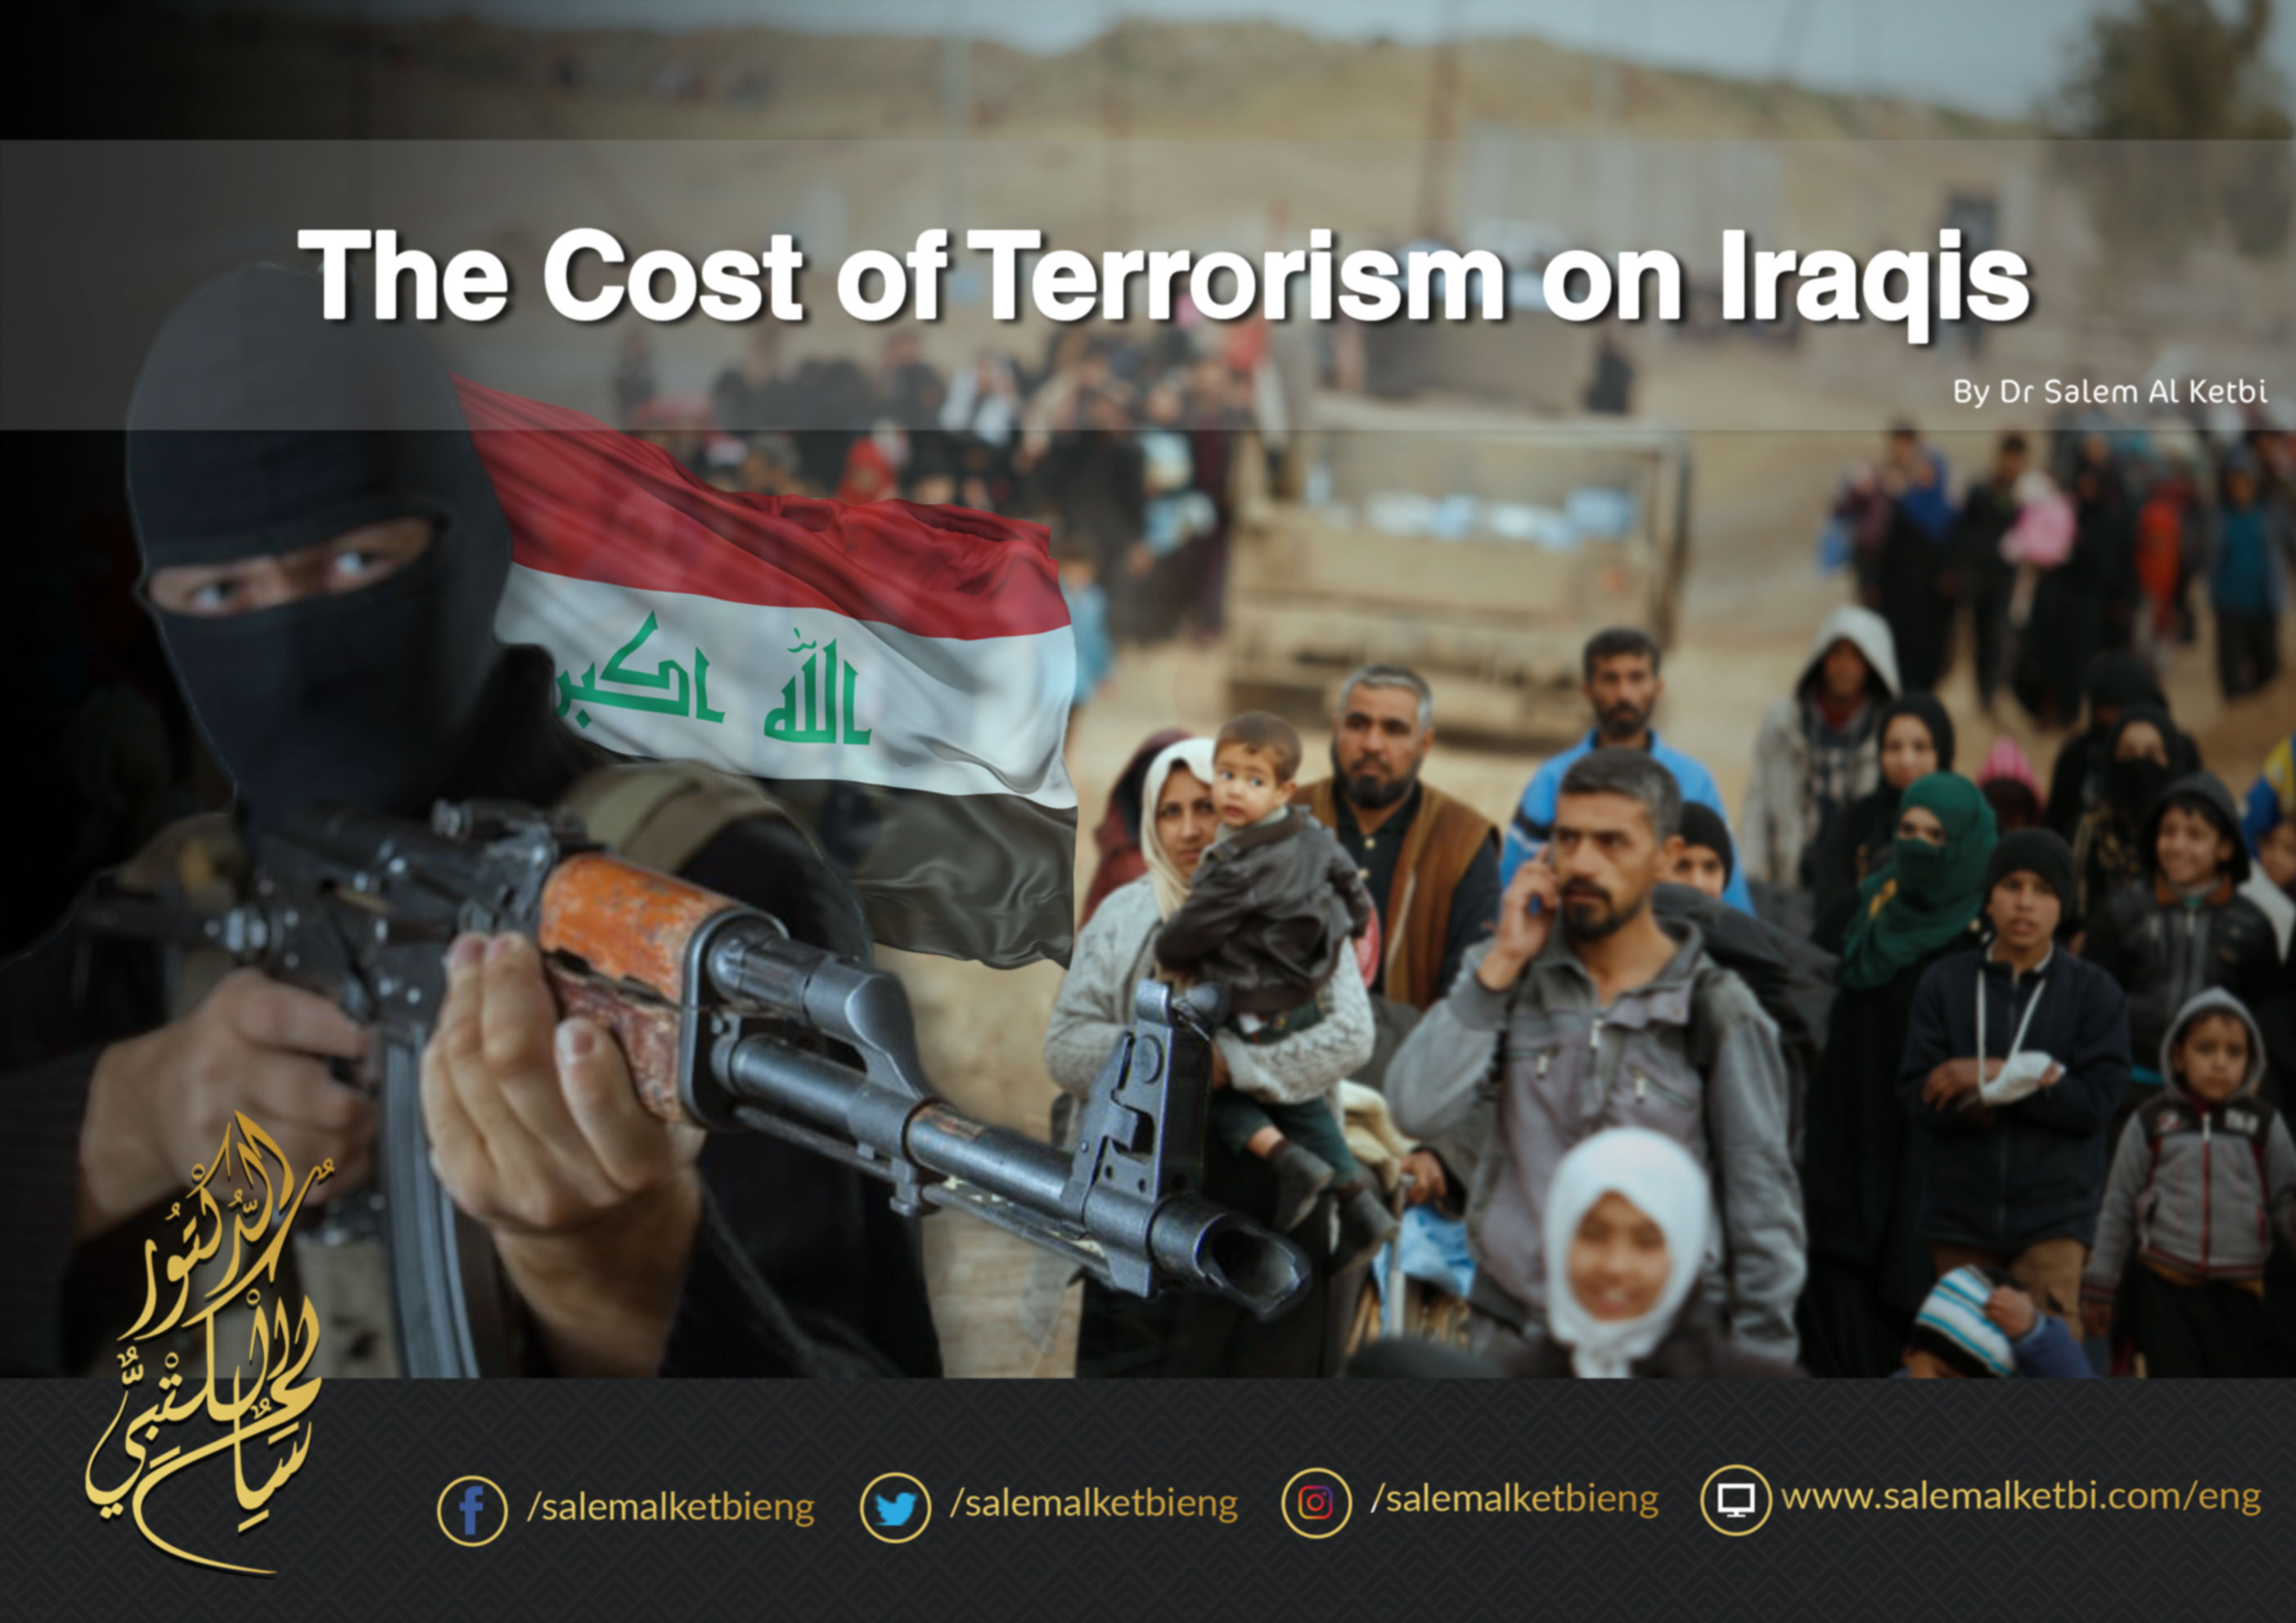 The Cost of Terrorism on Iraqis